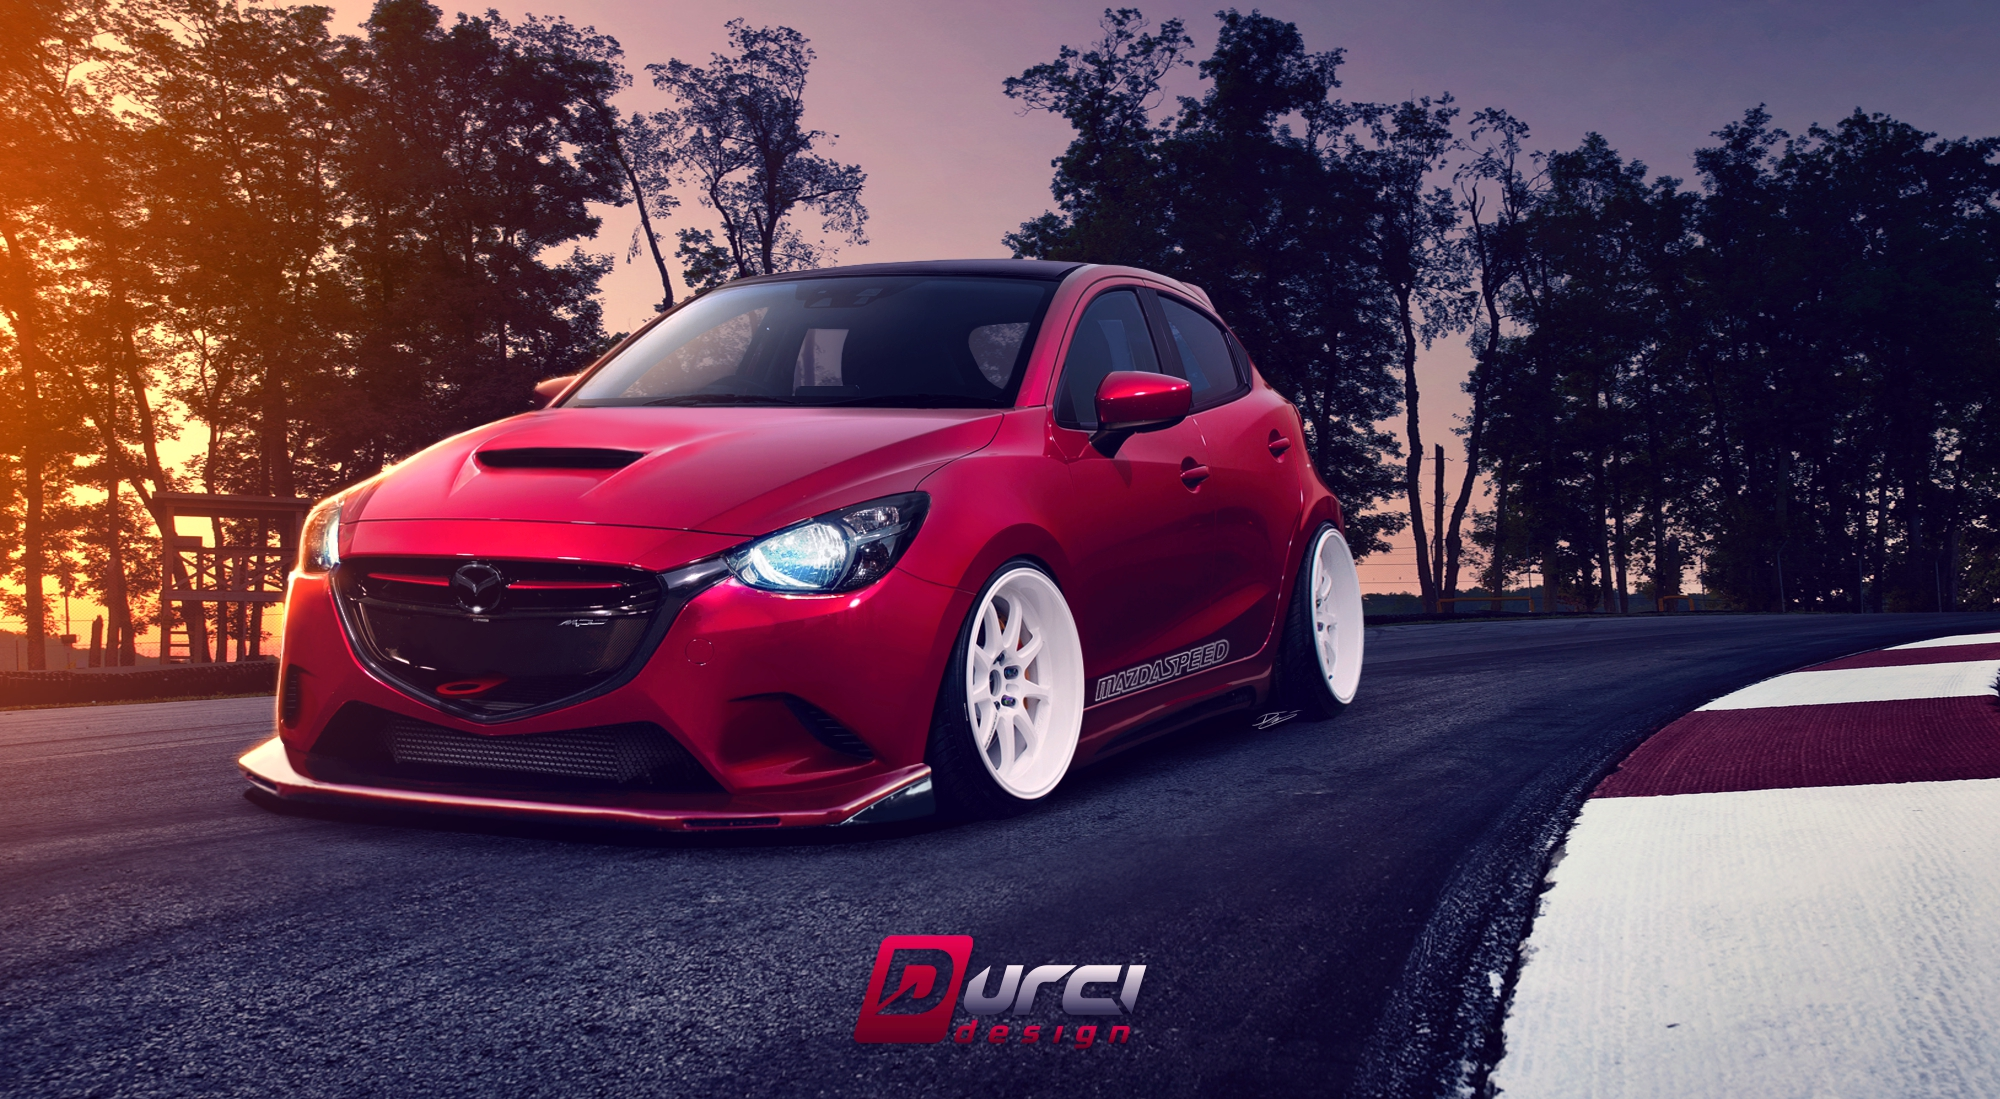 Toyota Tundra Build >> DURCI design | Mazda 2 Mazdaspeed